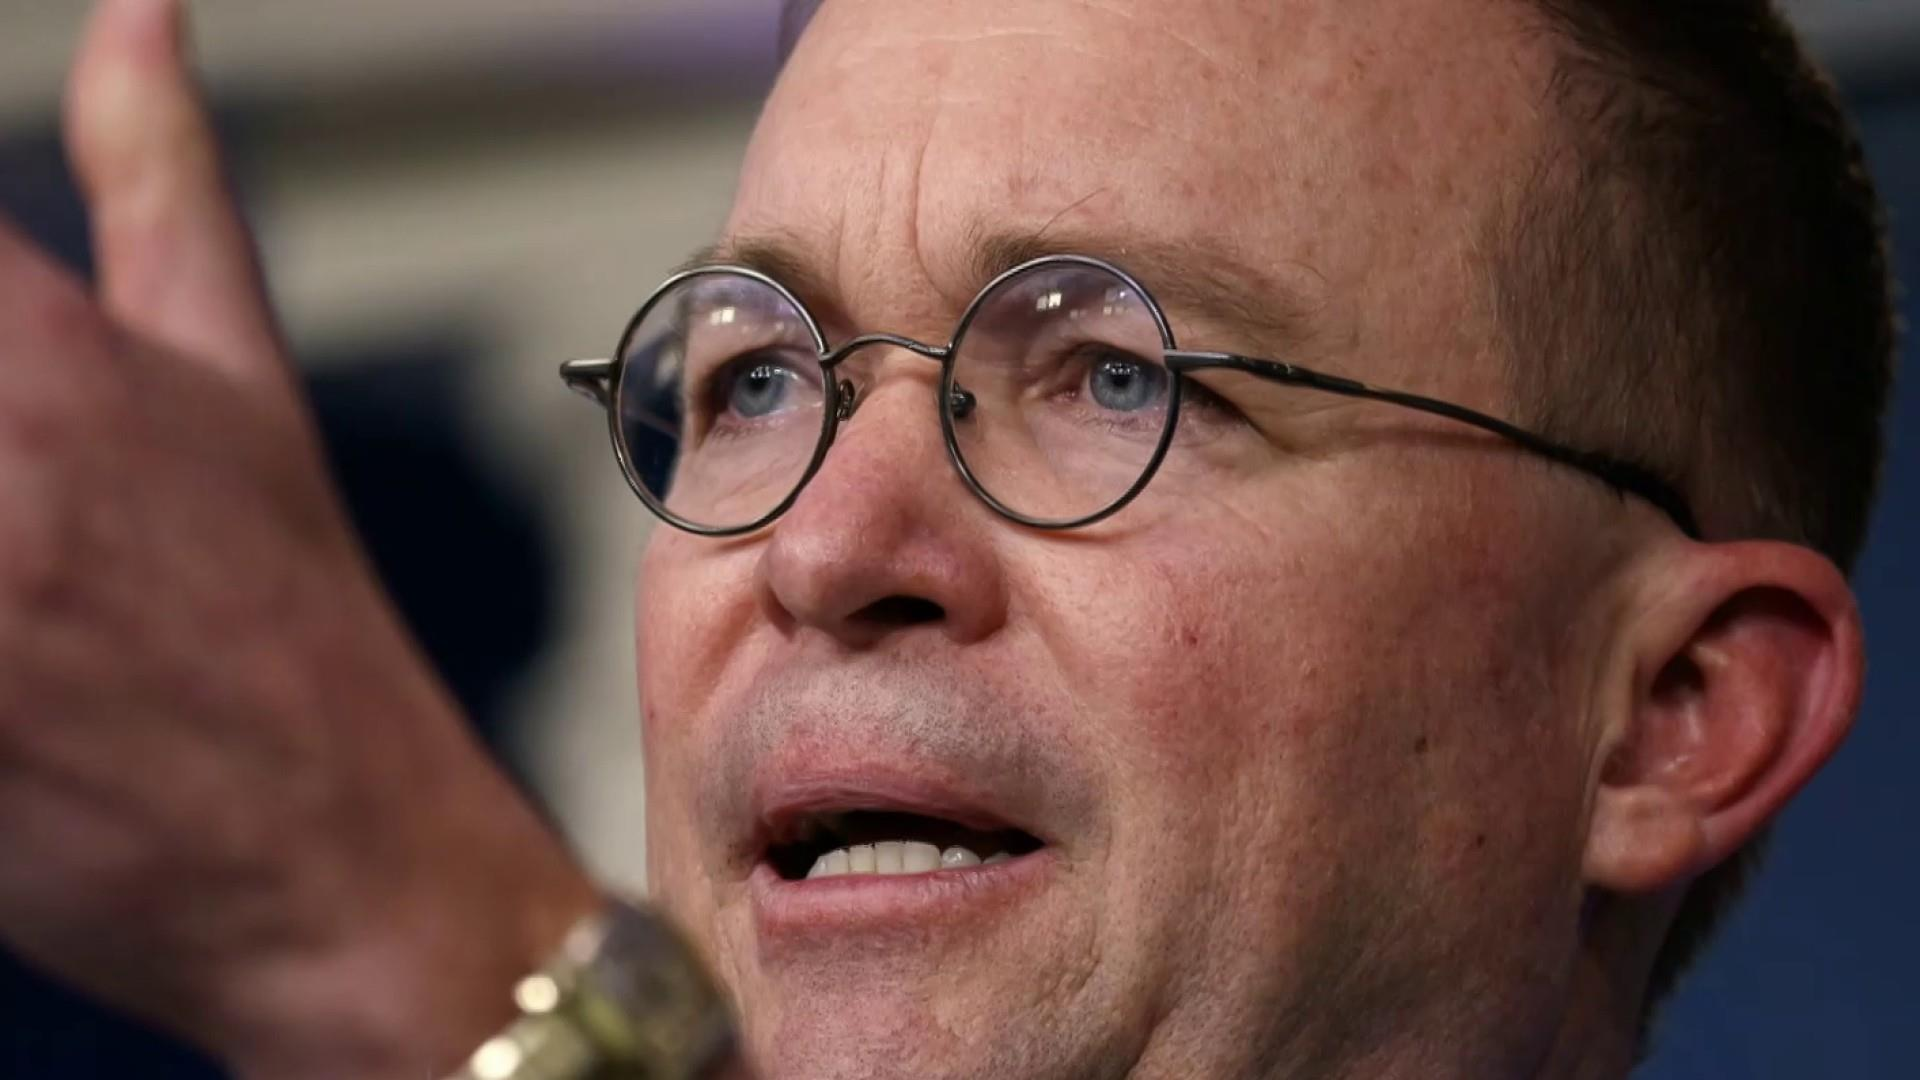 White House in damage control after Mulvaney's quid pro quo admission, backtrack